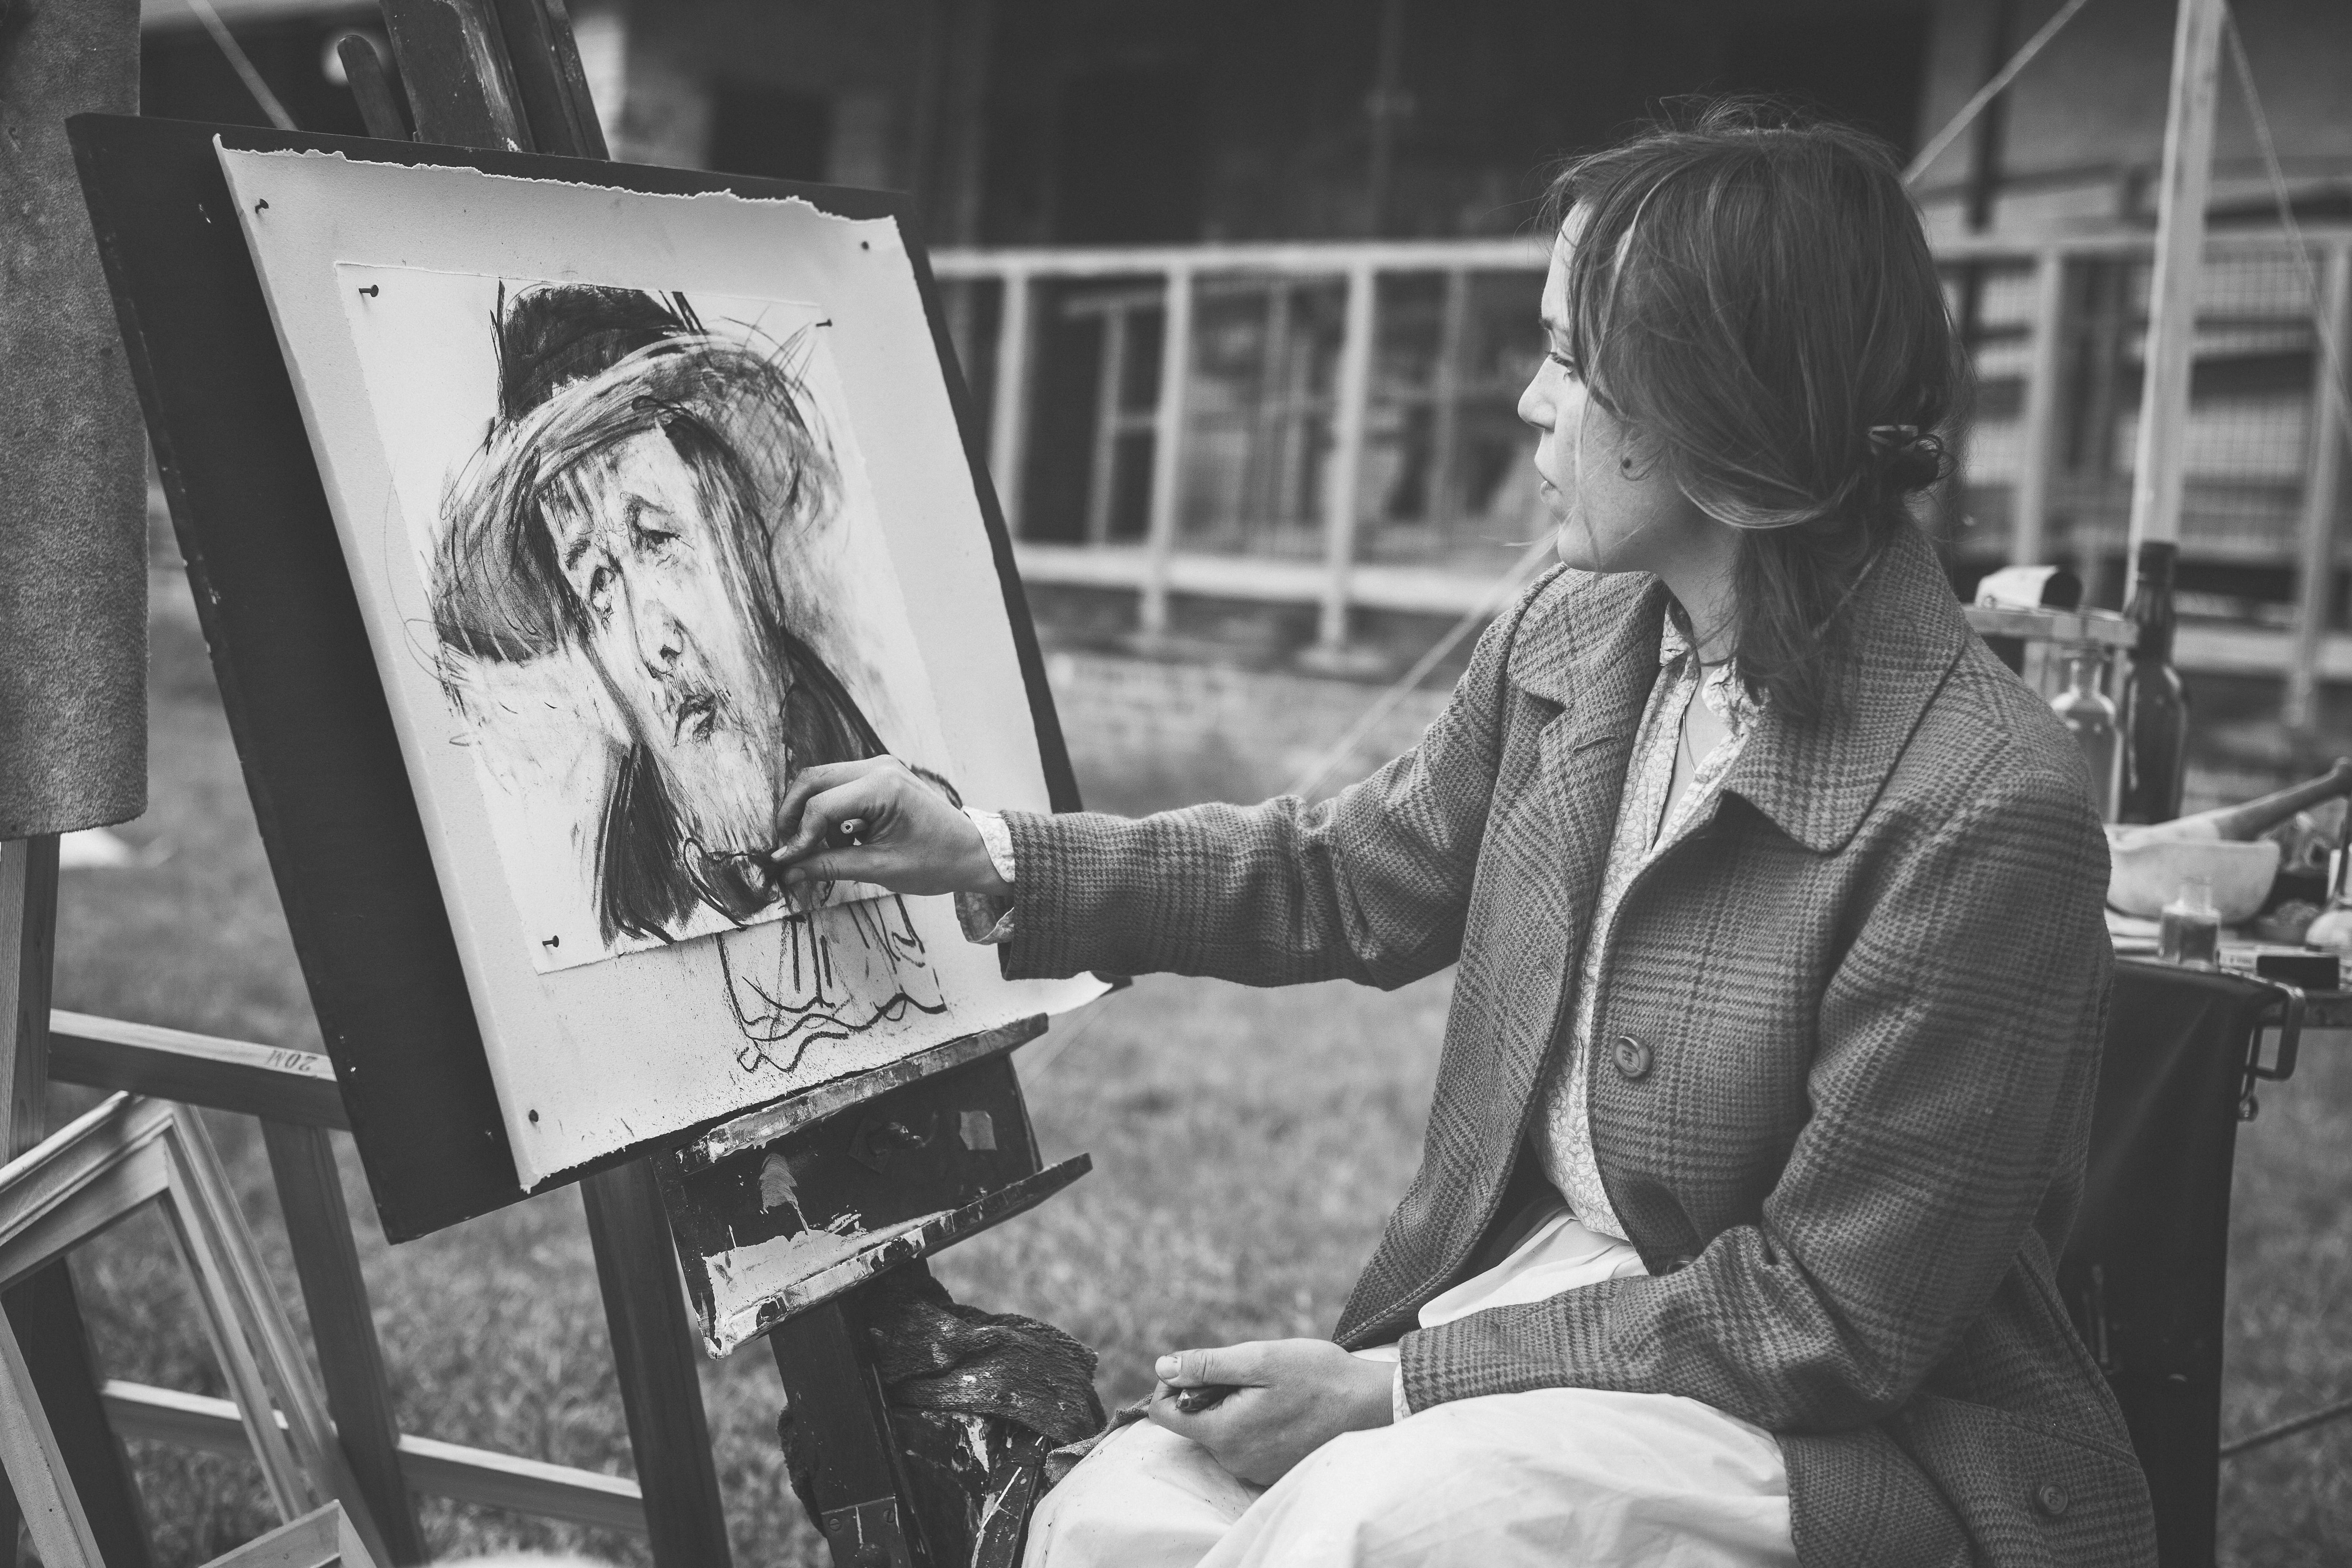 grayscale photography of woman sitting while painting